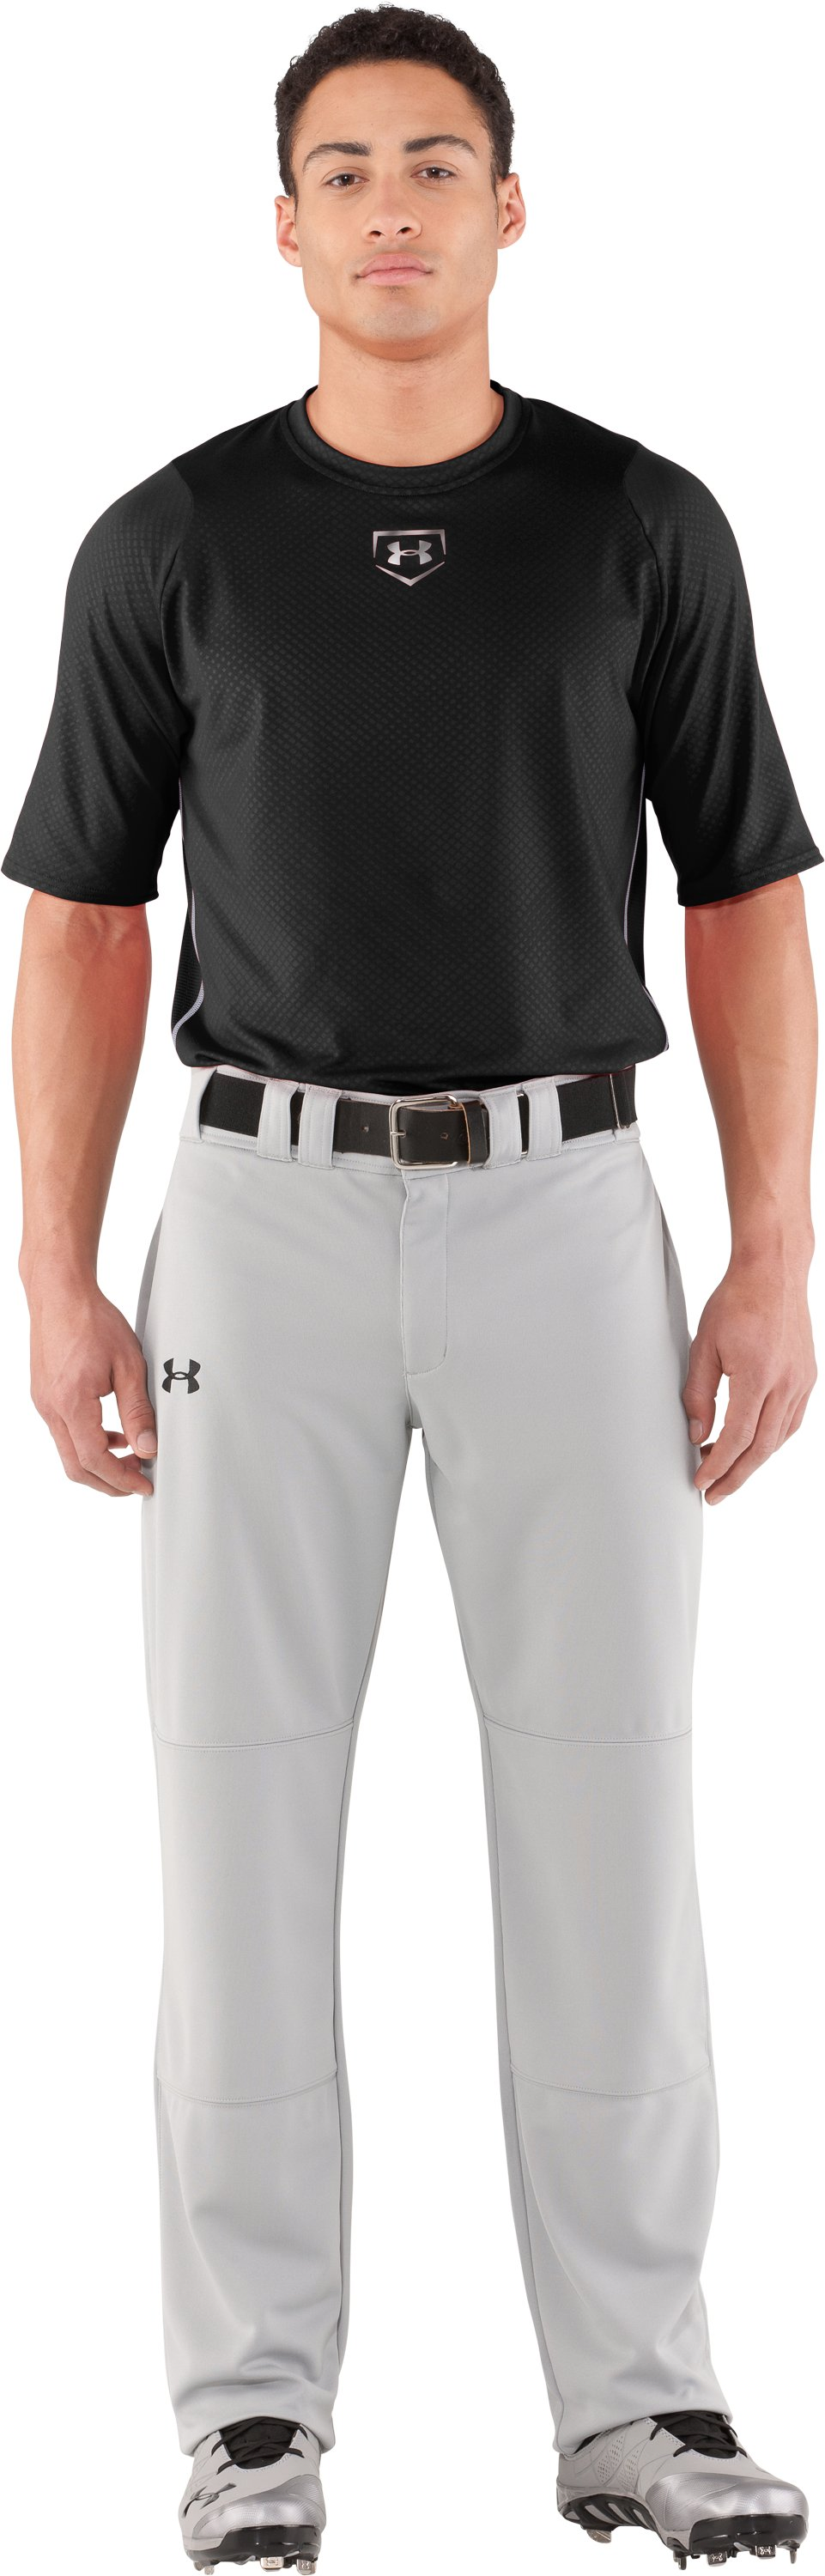 Men's UA Diamond Armour™ Baseball Short Sleeve Baselayer, Black